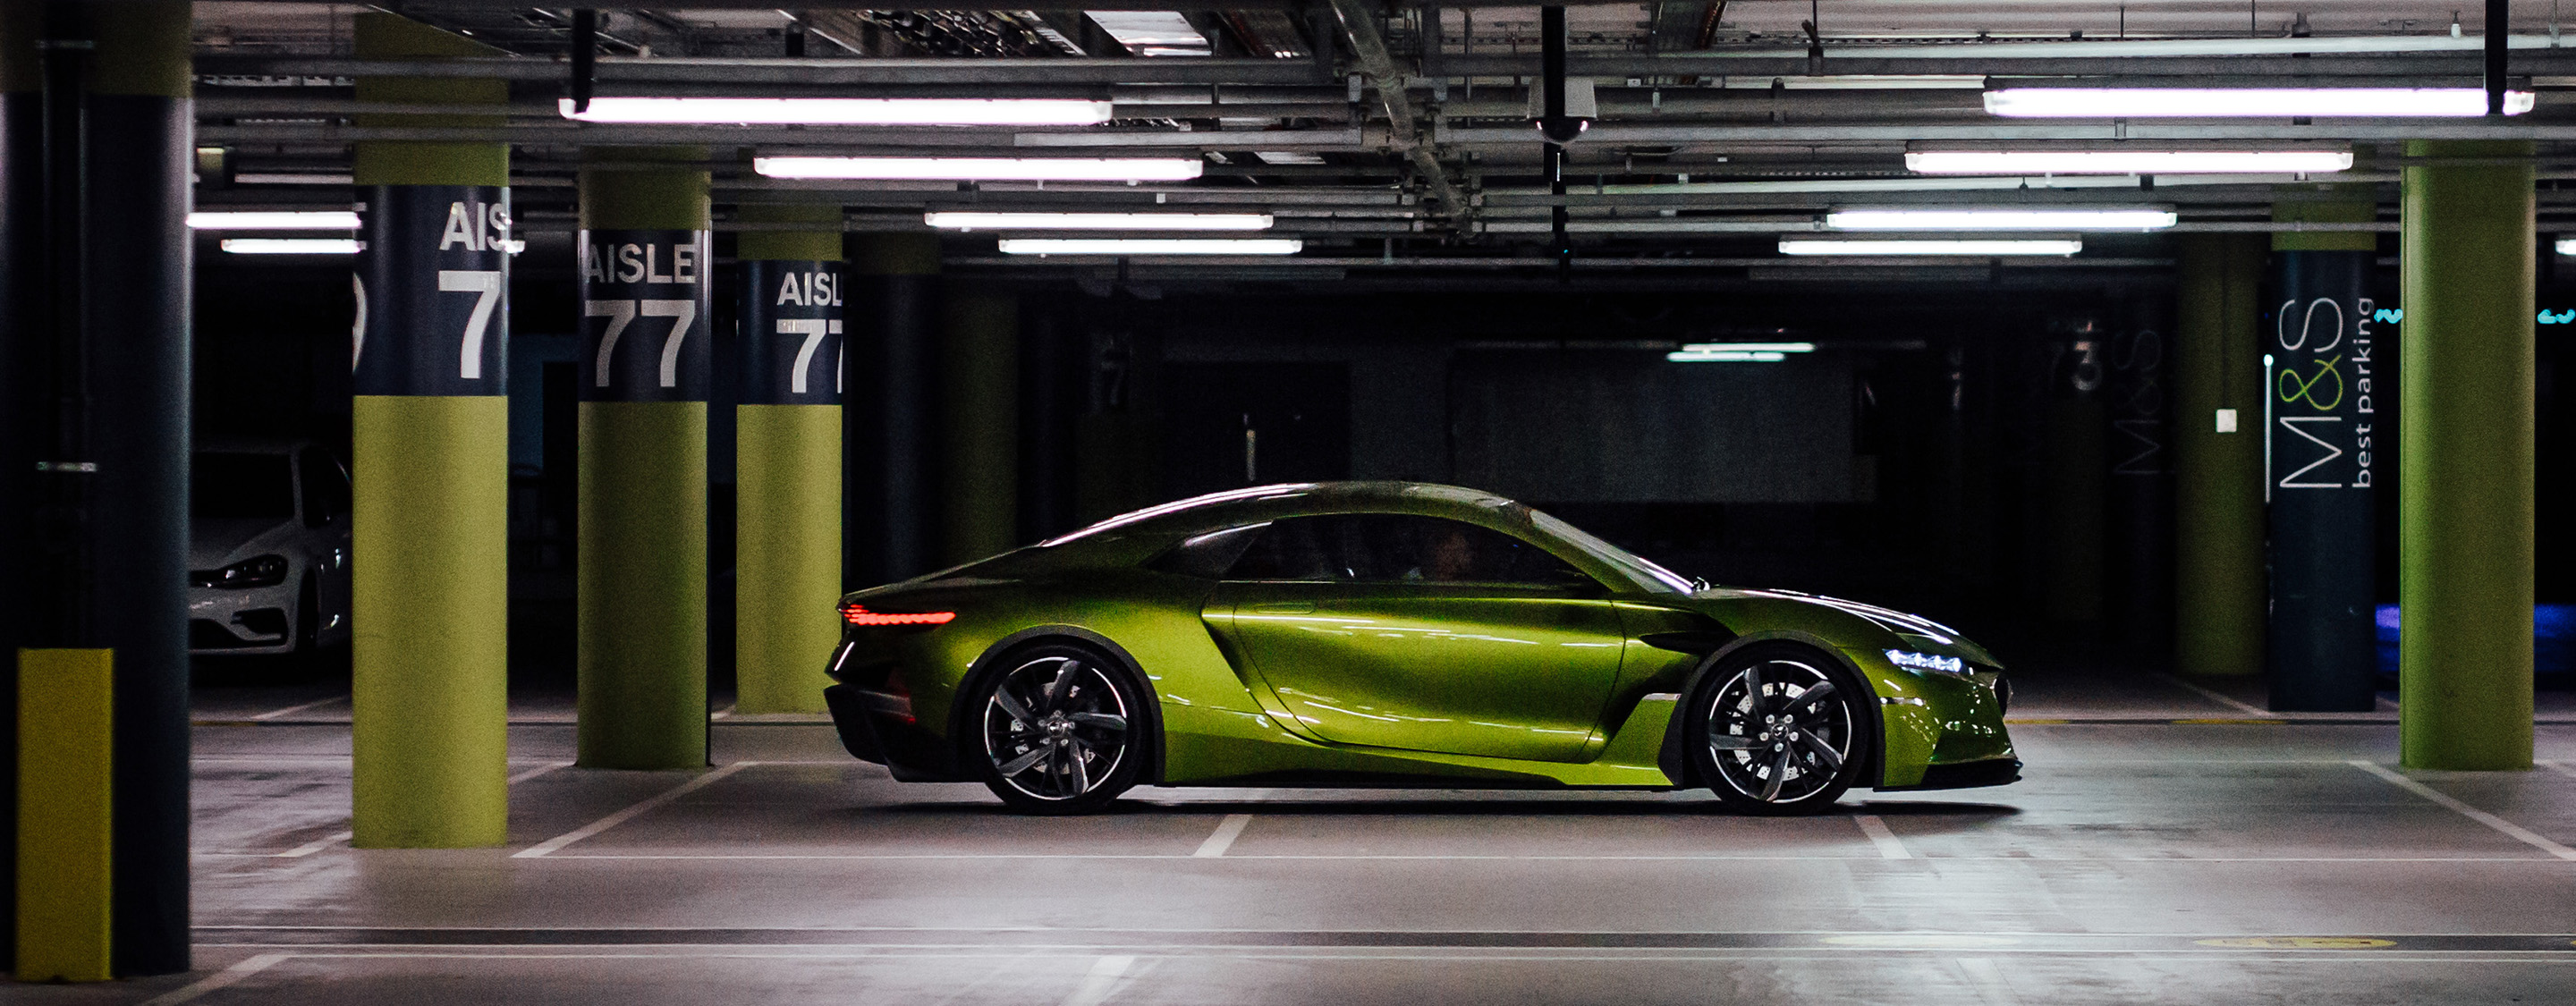 TrackWorthy - DS E-Tense at DS Urban Store in Westfield London (2)